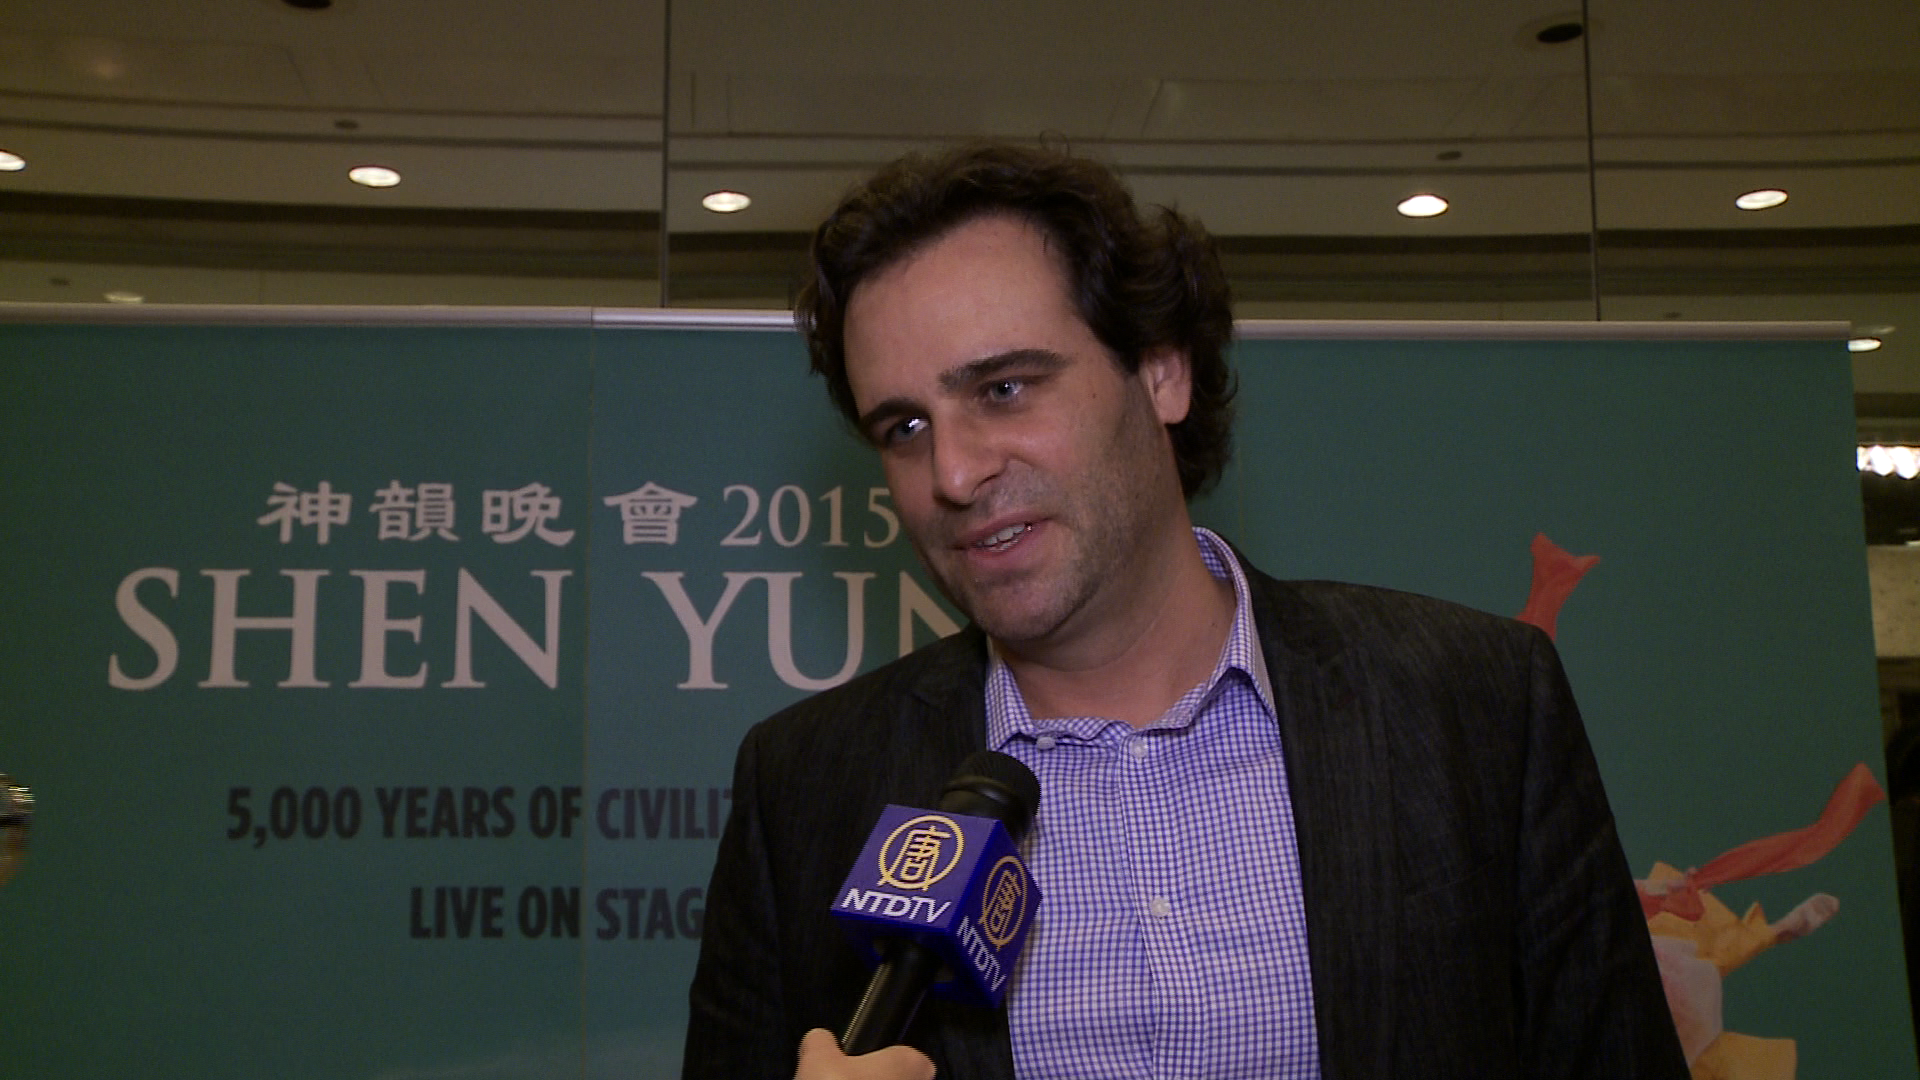 Music Business Executive Says Listening to Shen Yun Orchestra 'Was a great journey'